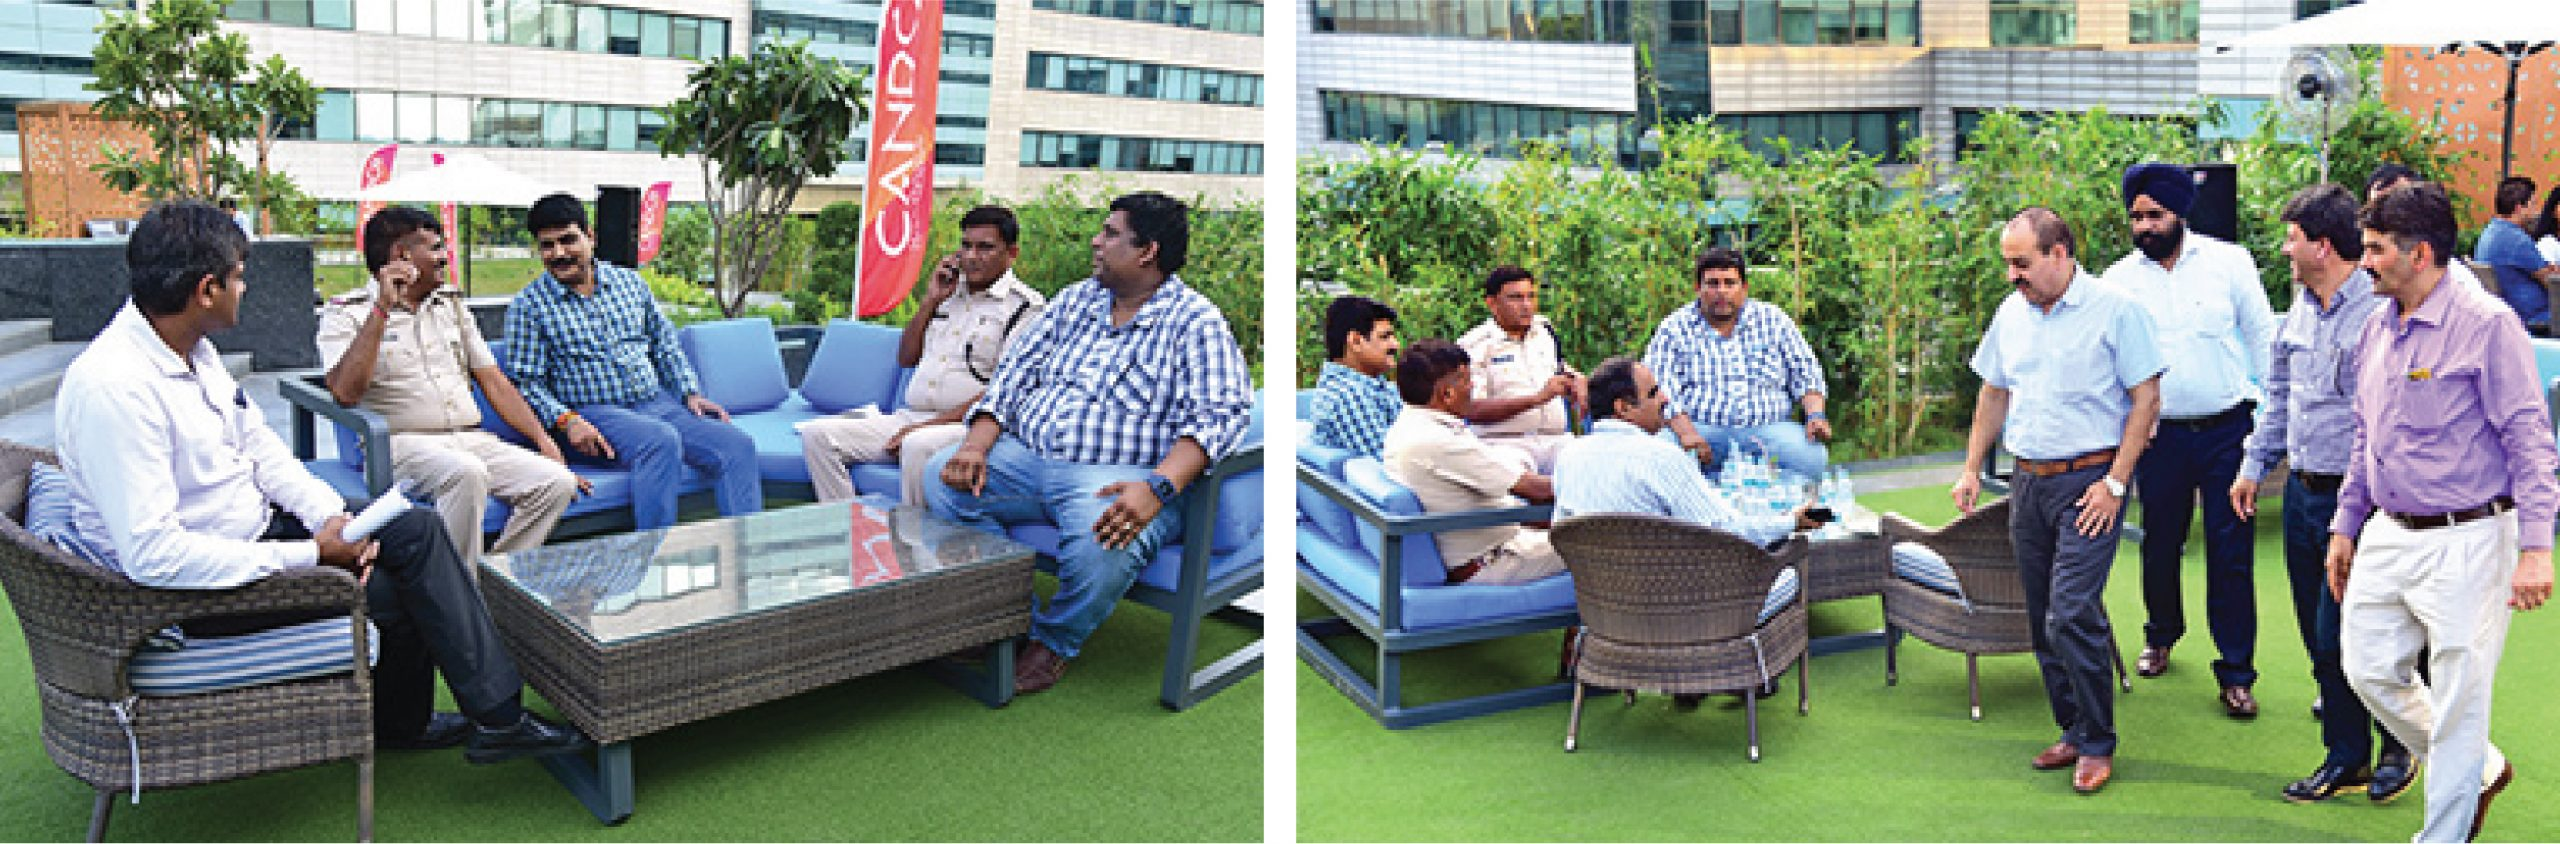 Conversations galore, at the inauguration & Some of the attendees at the event - Candor TechSpace